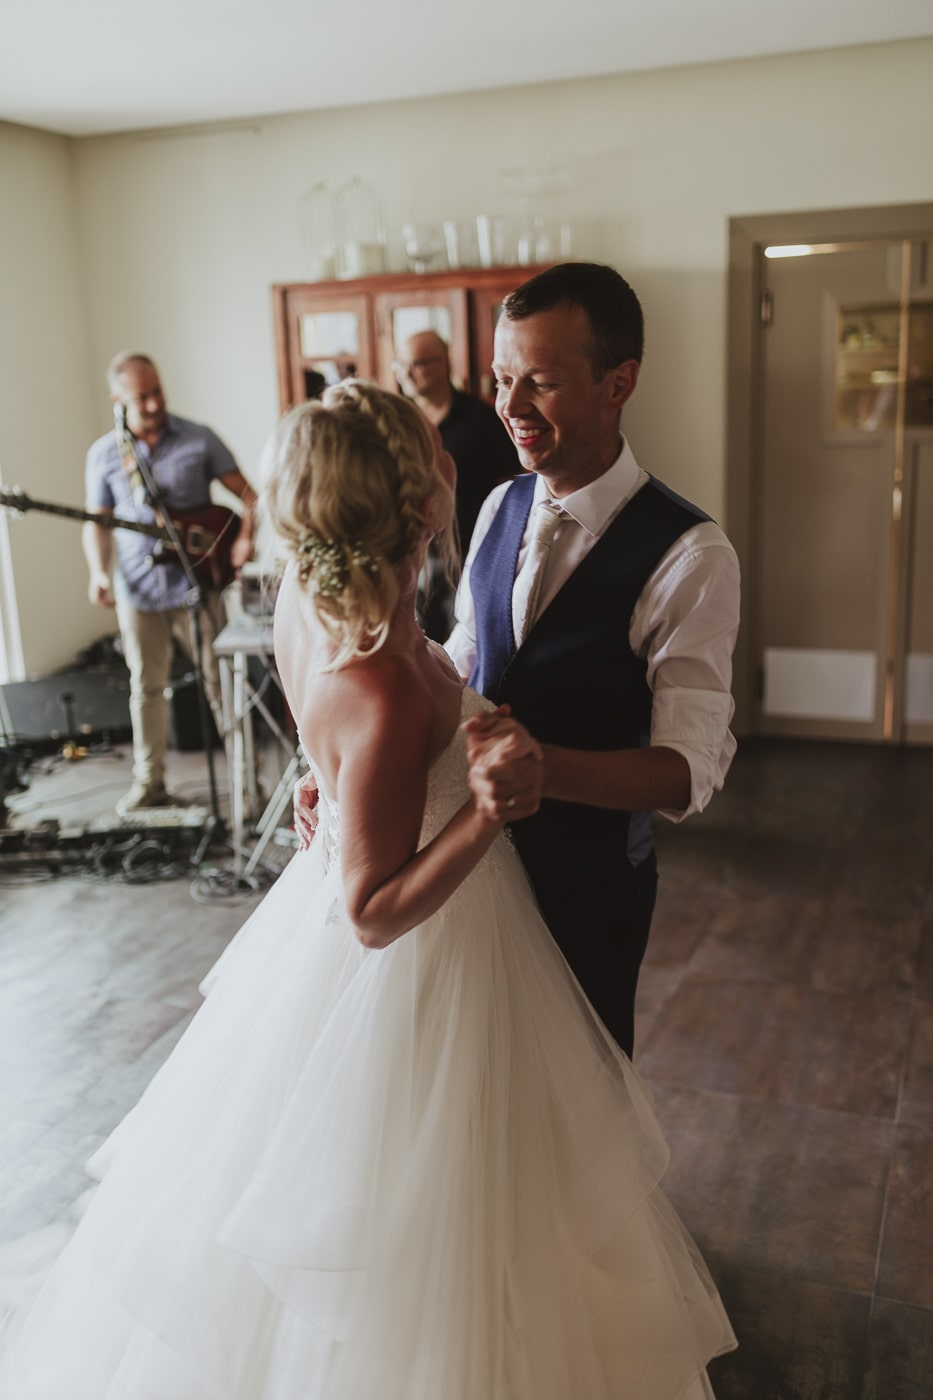 Bride with braided hair and white tulle dress dancing with man in white shirt and blue waistcoat with band playing in the background by Joshua Wyborn